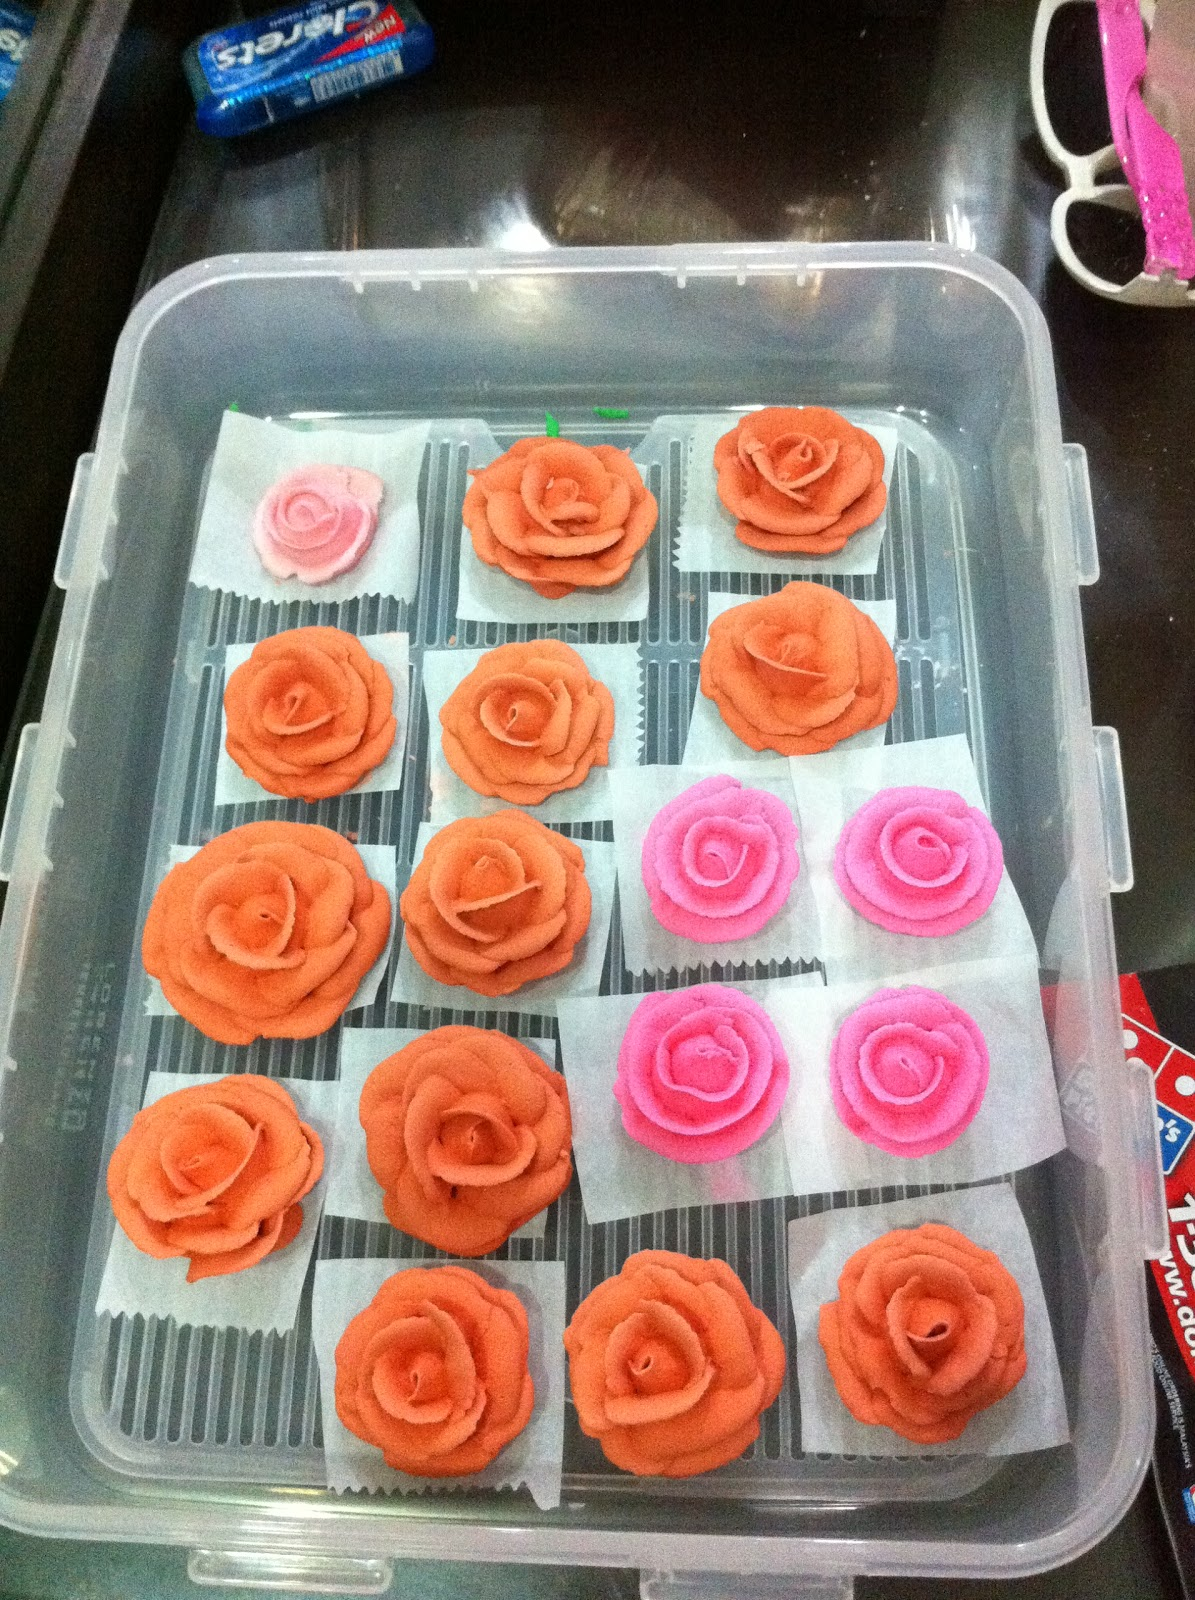 home mayde cakes wilton cake decorating course 2 class 3 and - Cake Decorating Classes Near Me